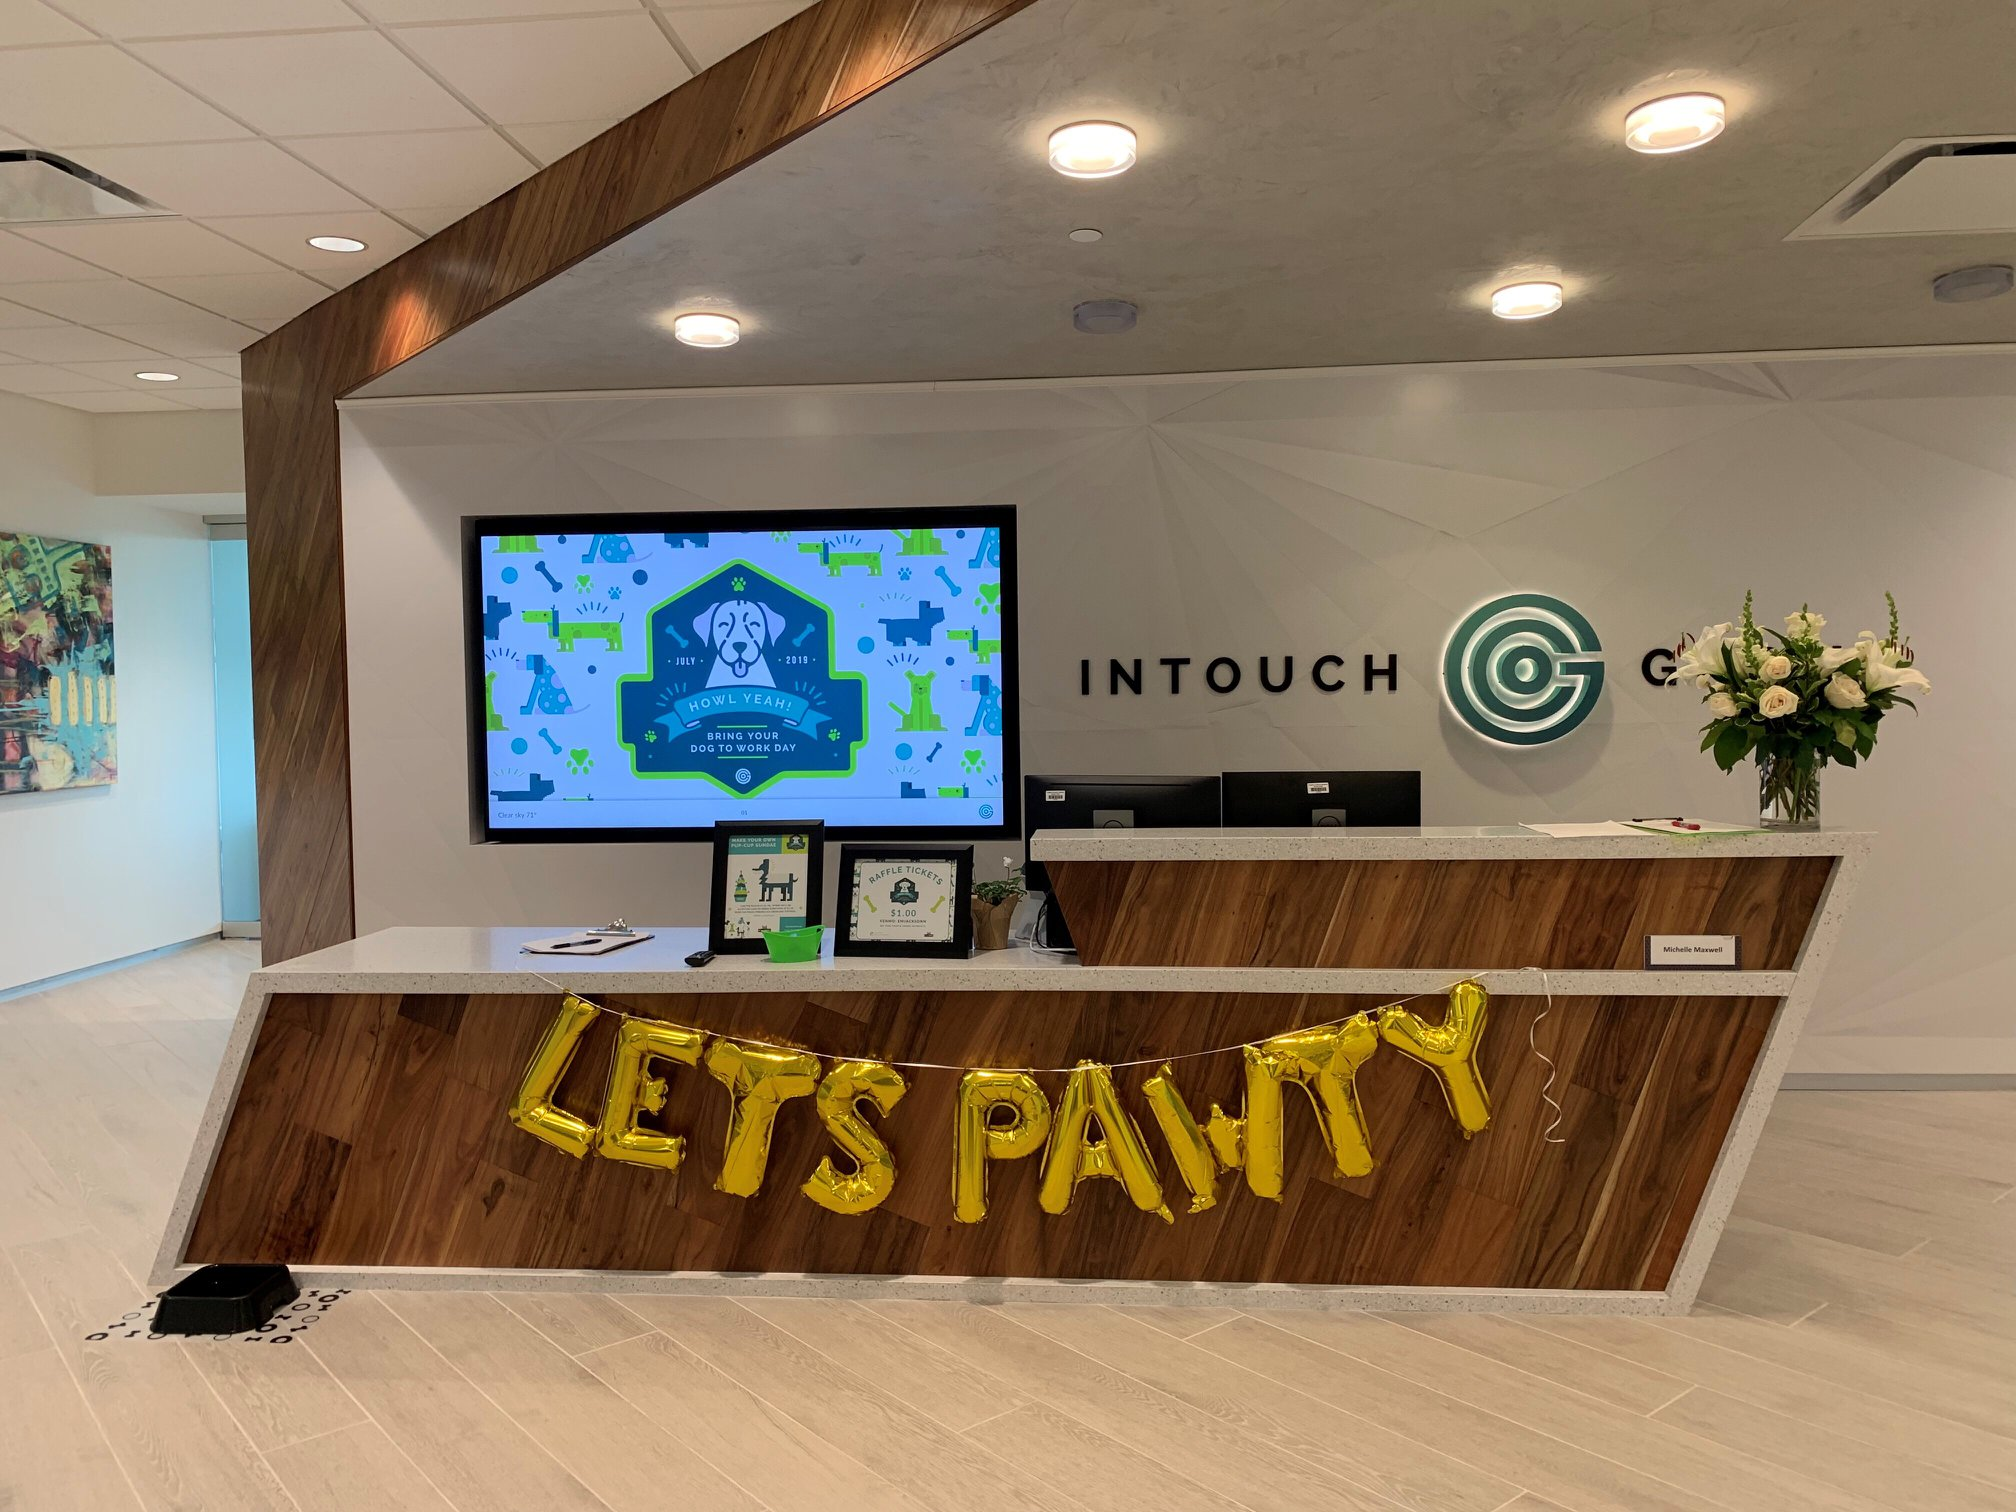 Intouch Group lobby decorated for Bring Your Dog to Work Day